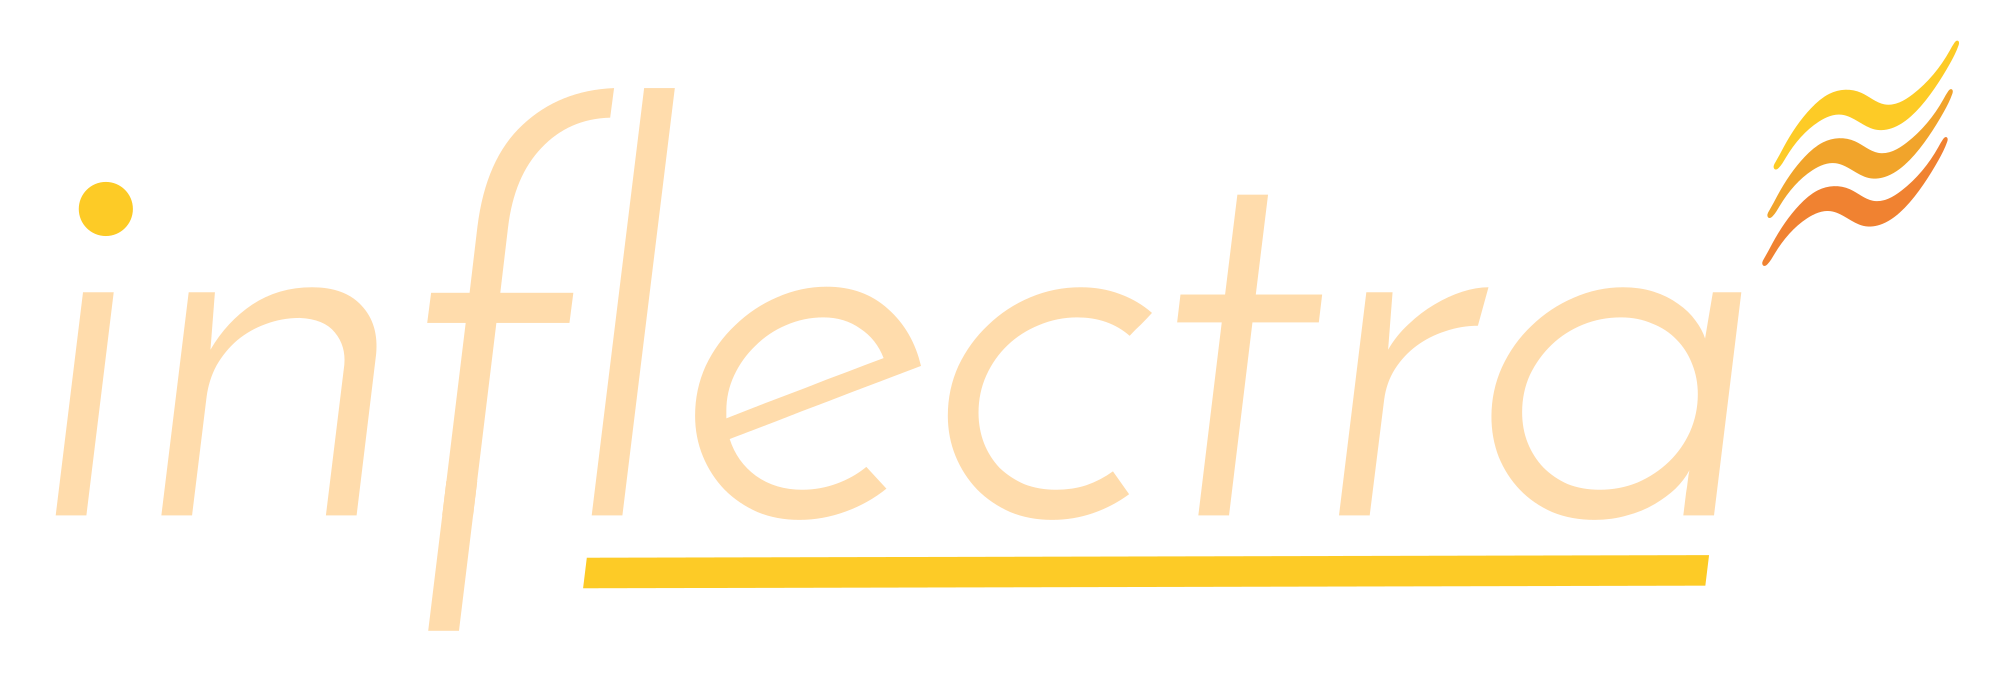 Inflectra Logo, Light, Transparent